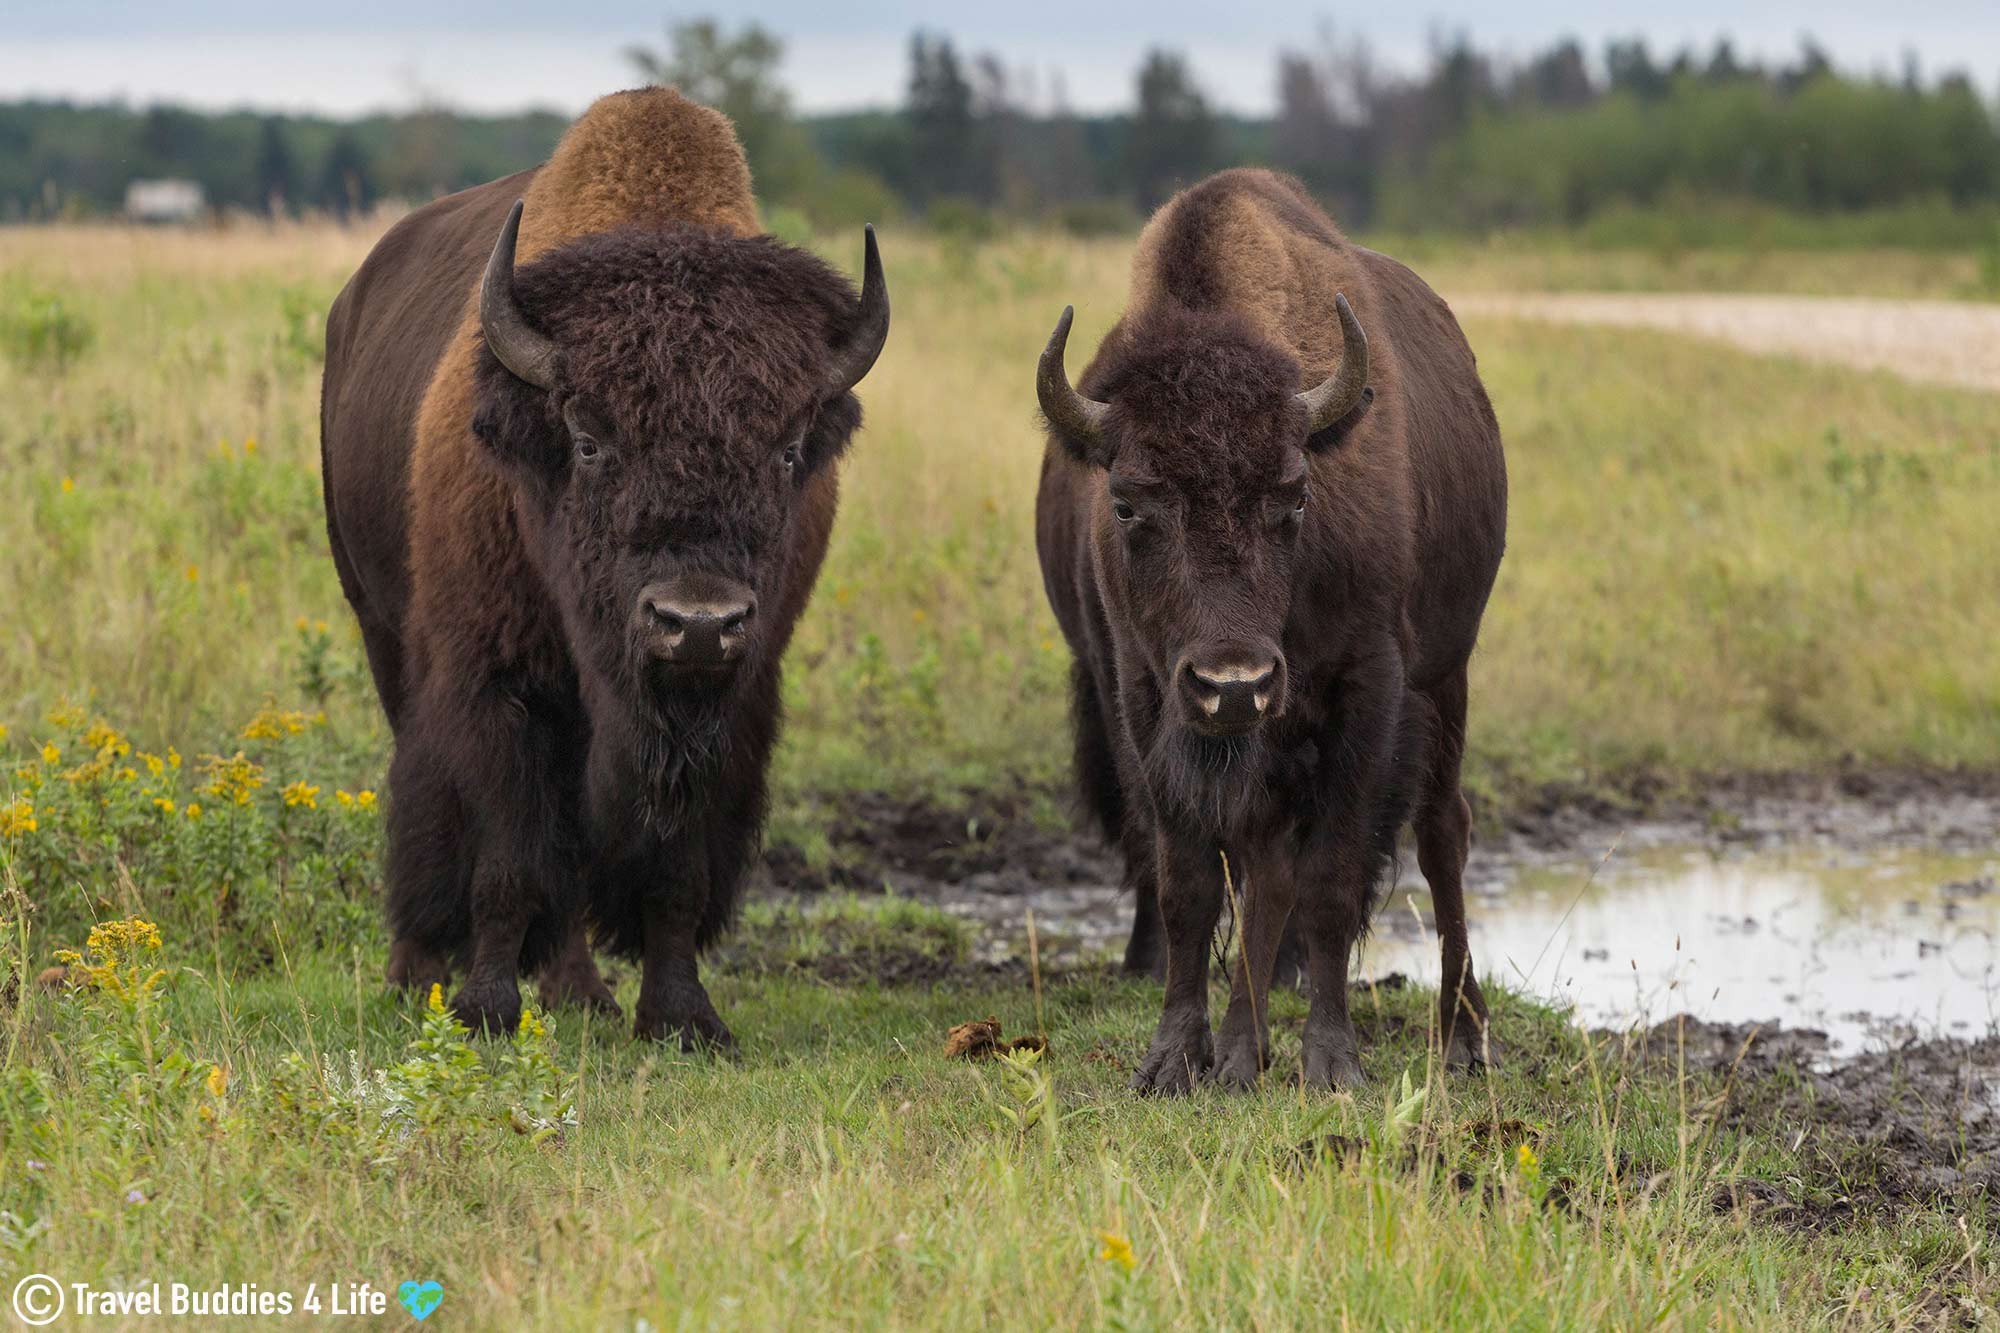 A Big And Small Bison Near The Watering Hole, Riding Mountain Park, Manitoba Travels, Canada